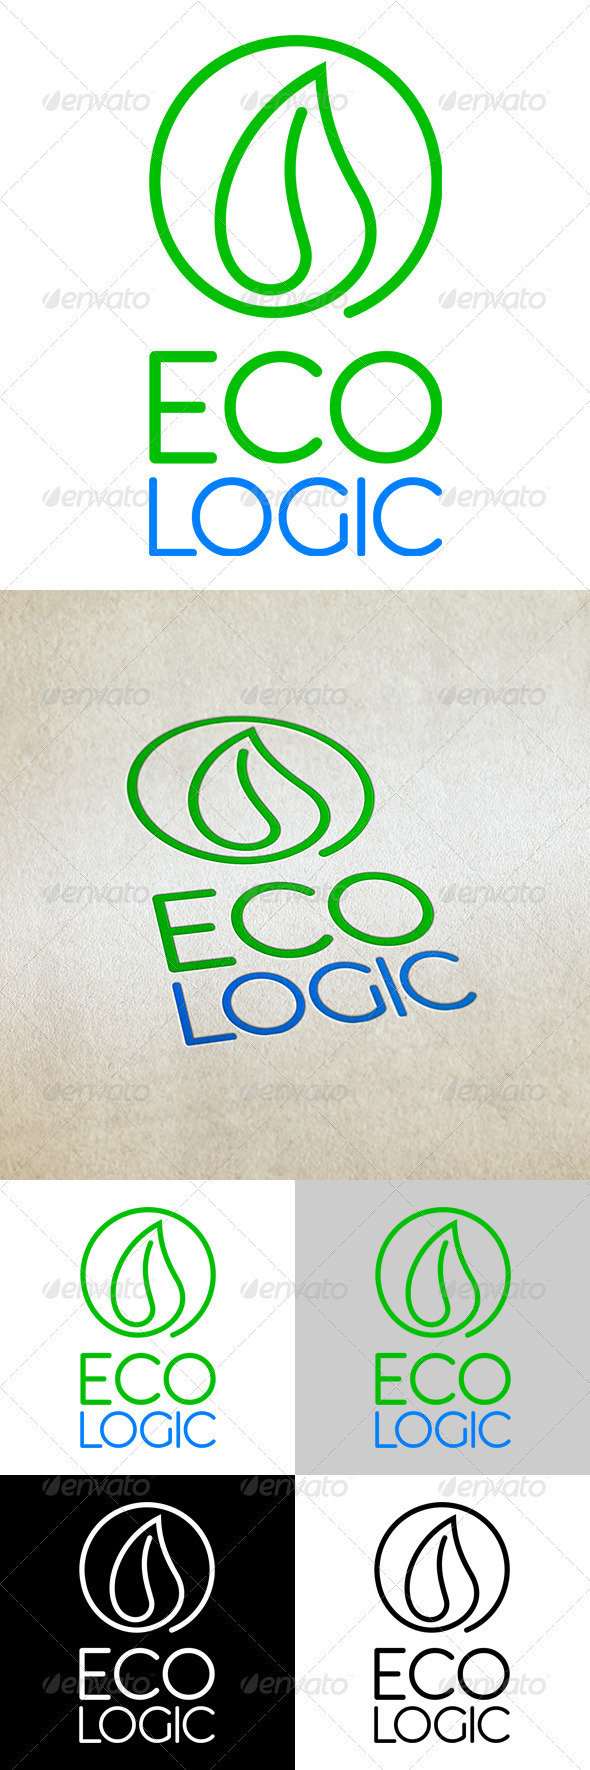 Eco Logic - Abstract Logo Templates